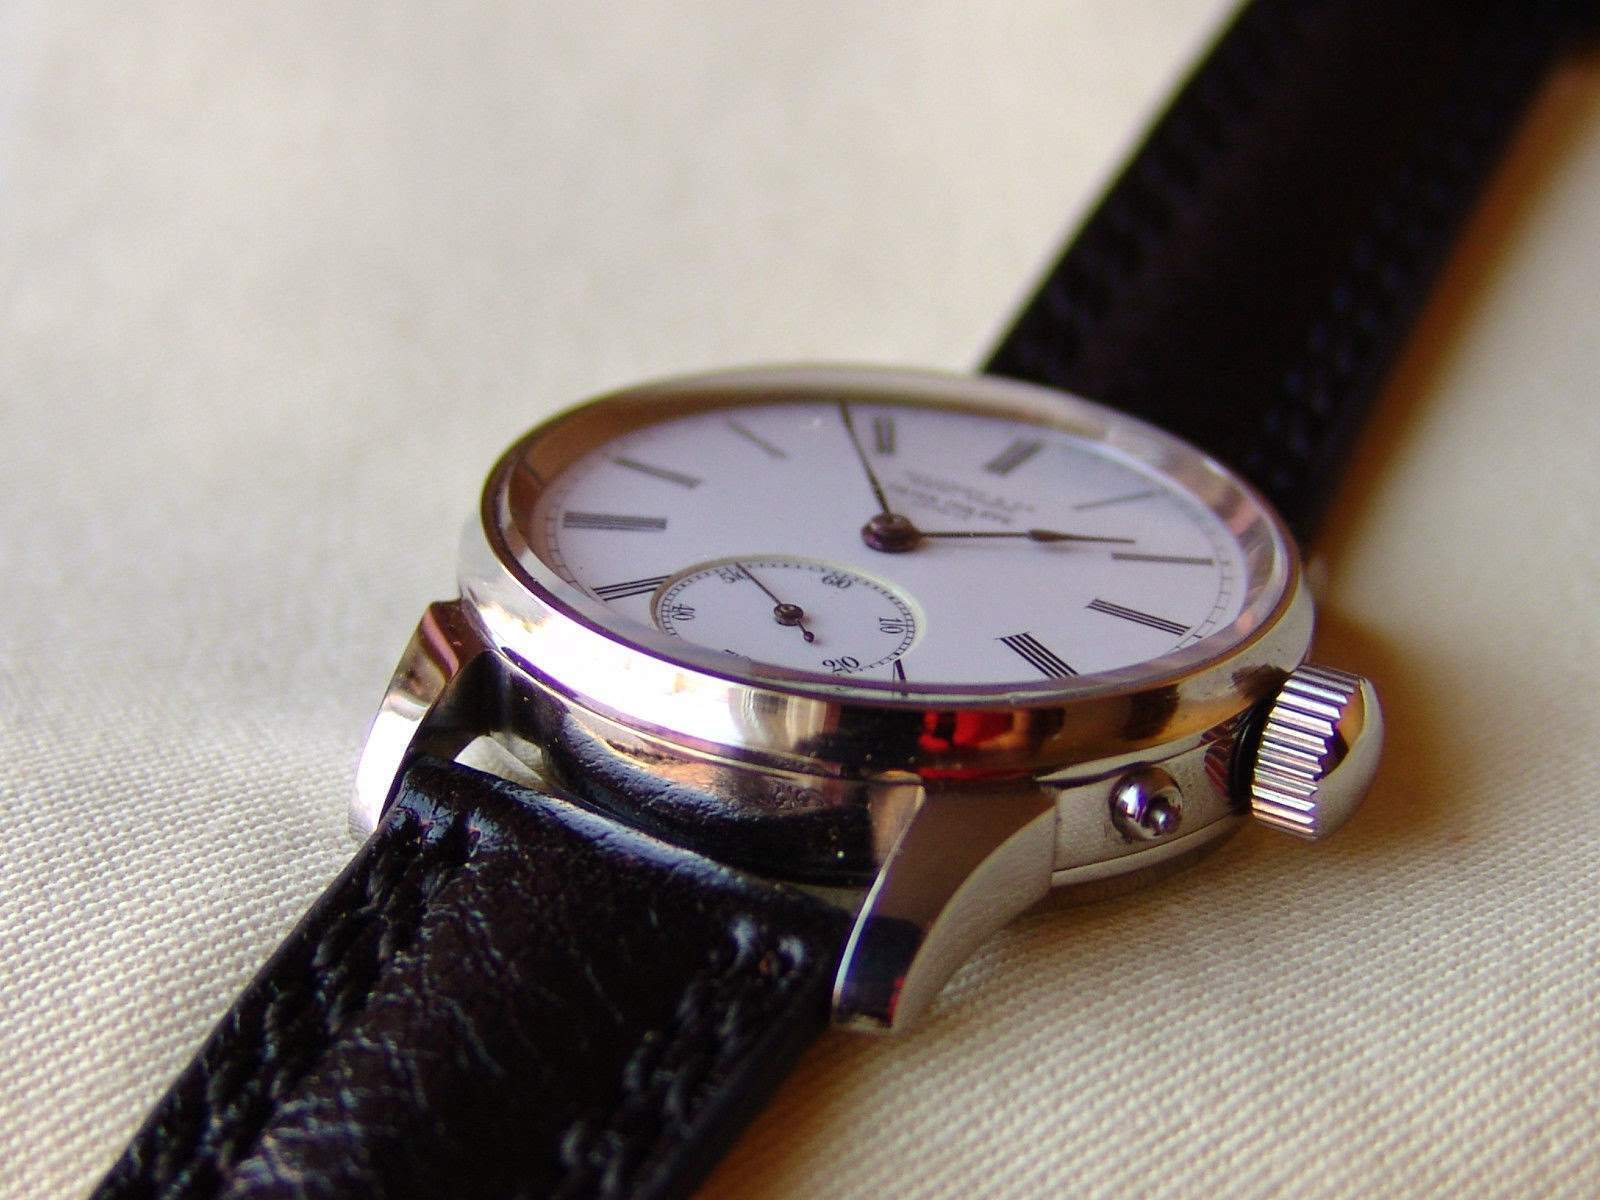 The story of the old lieutenant's wristwatch